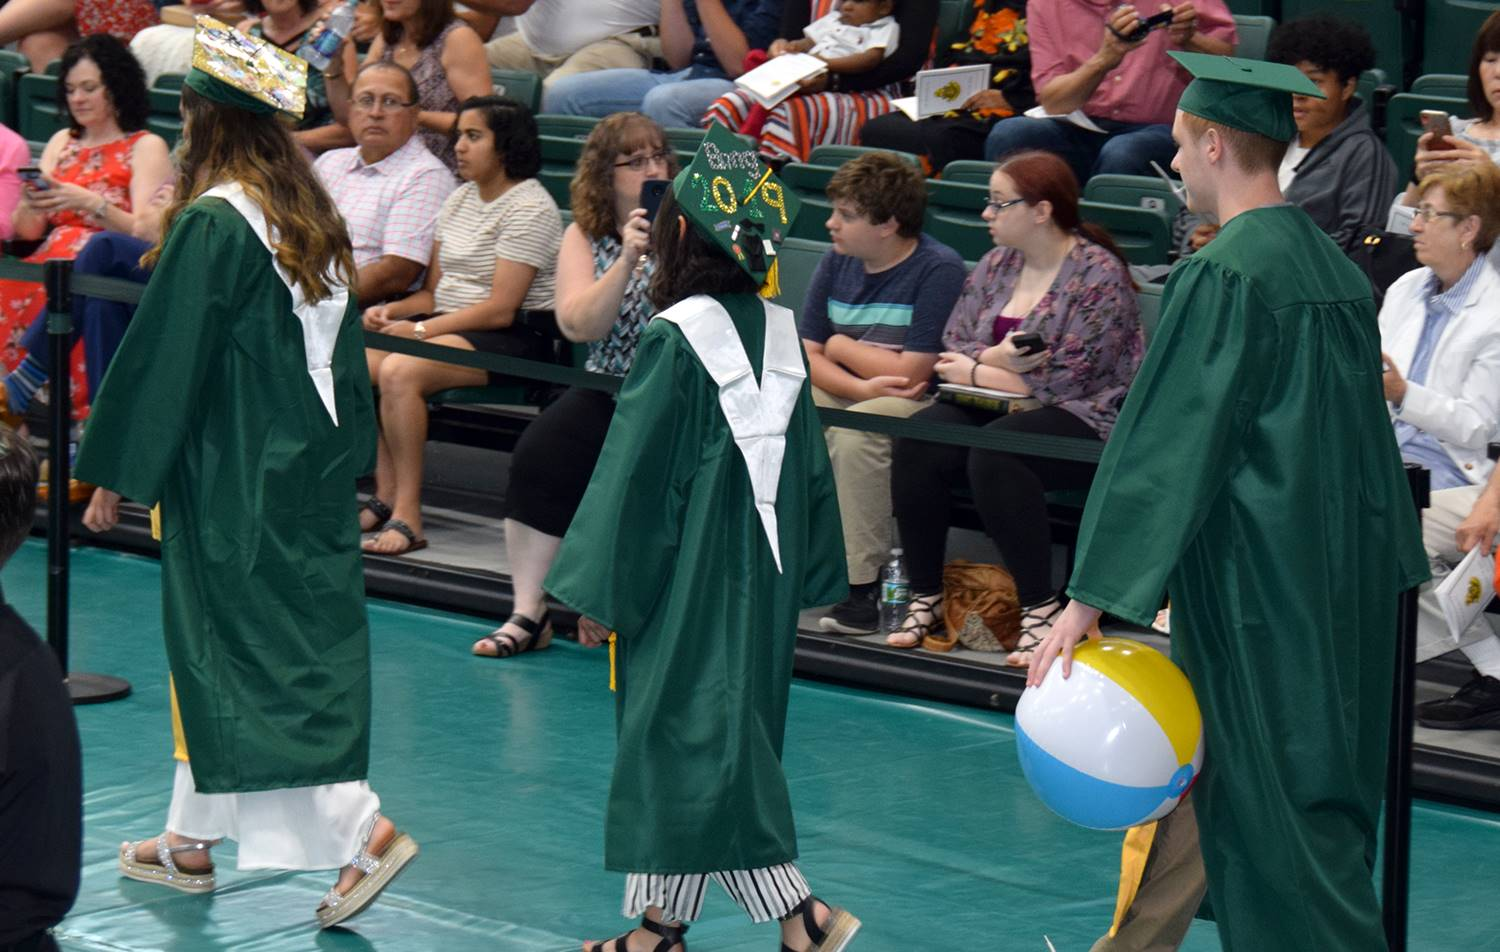 Three Vestal High School candidates for graduation process onto the Events Center floor, and one is